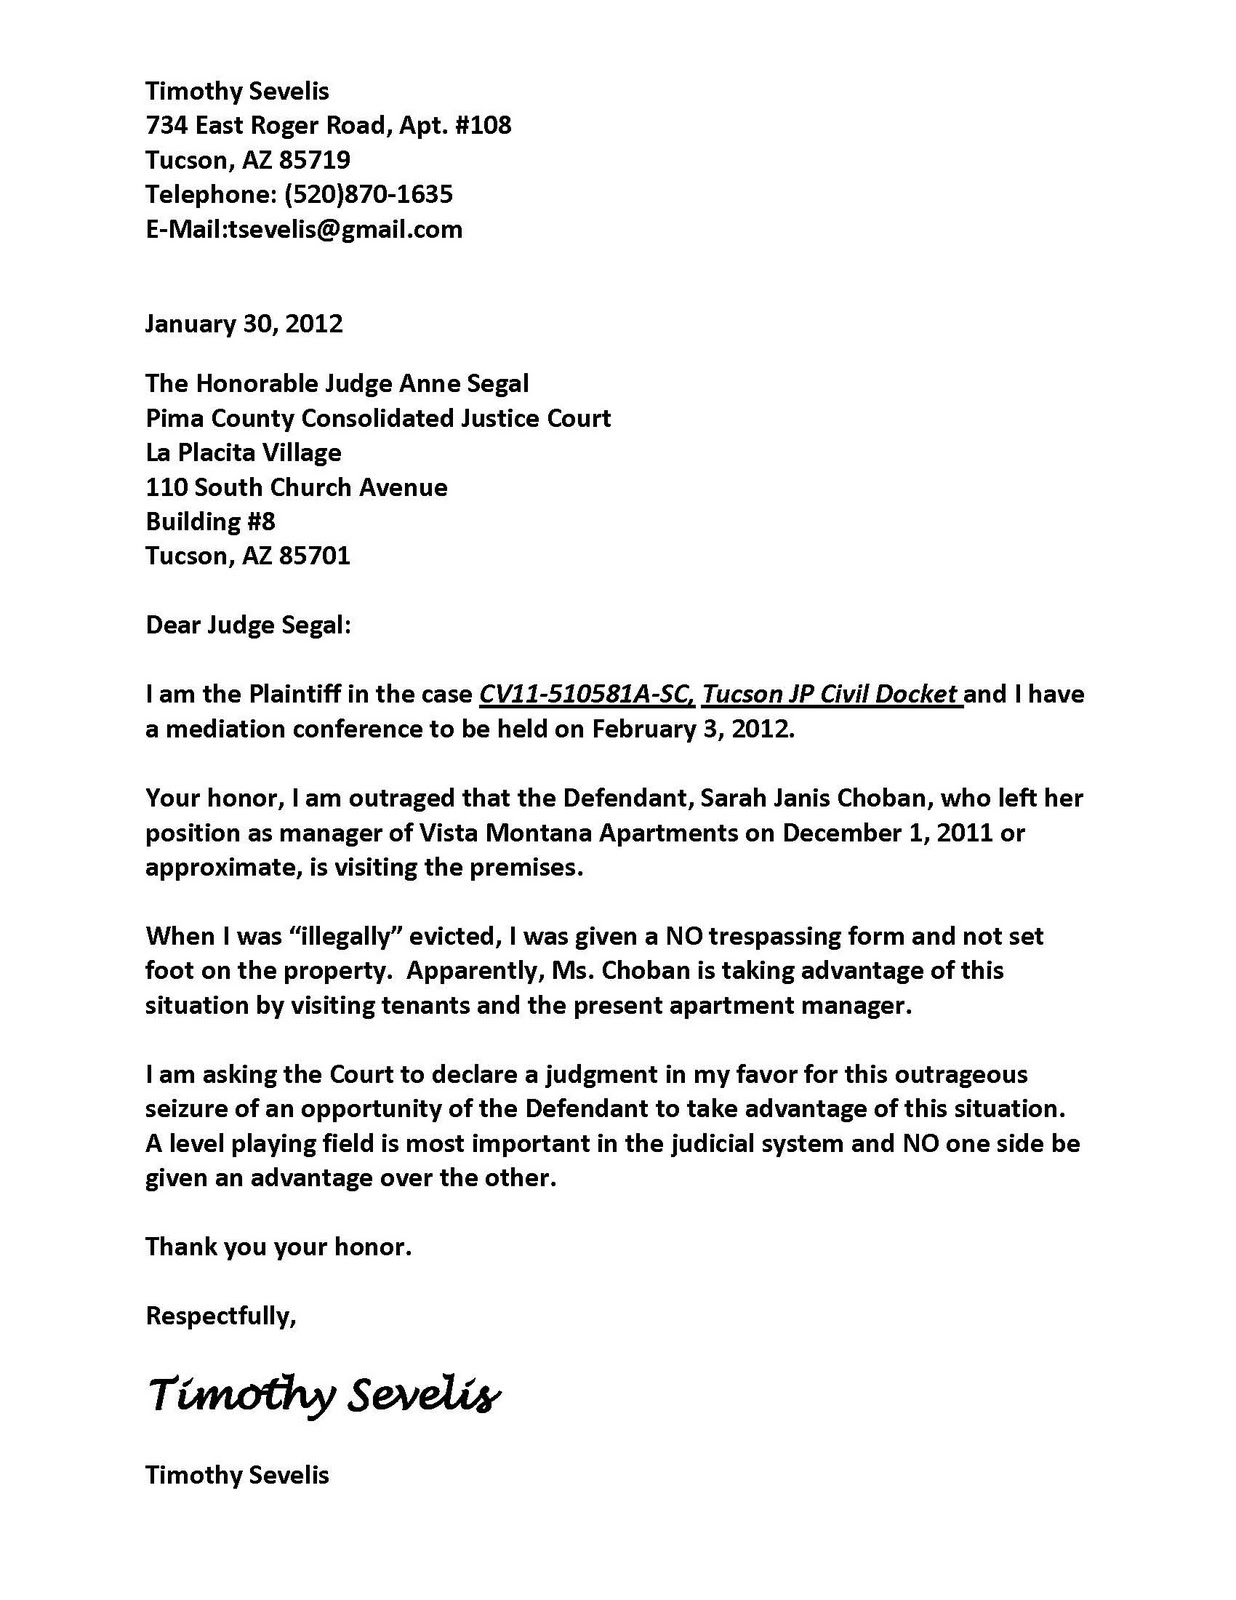 How to write a letter to a judge for leniency image collections writing a letter to a judge on behalf of someone free professional writing a letter judge spiritdancerdesigns Image collections